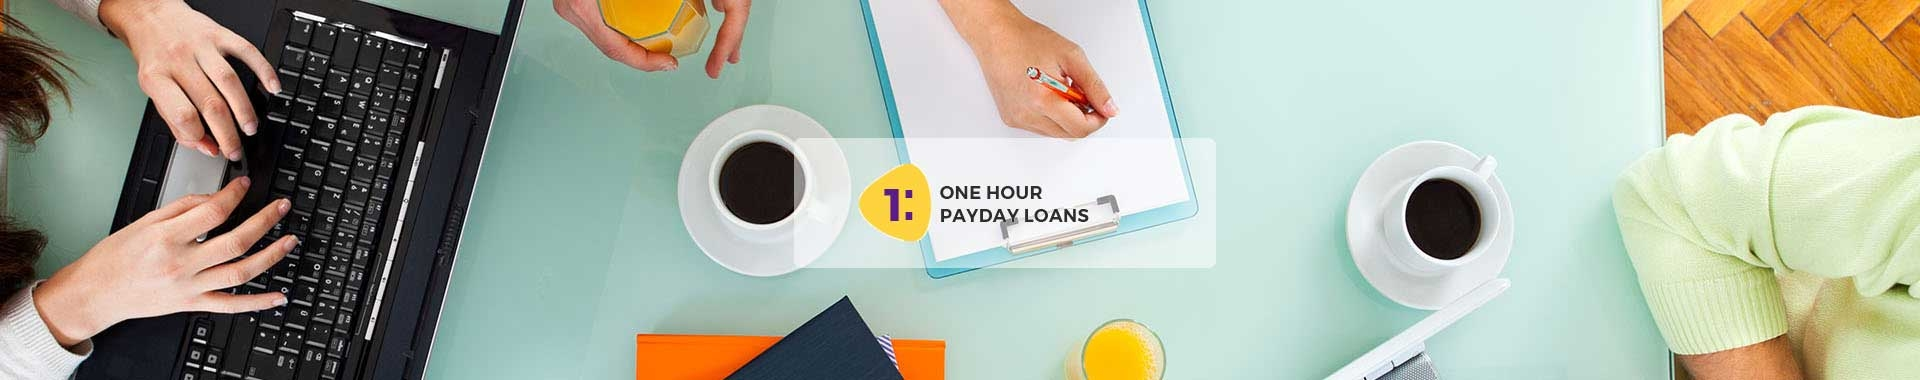 One Hour Payday Loans (@onehourpaydayloans) Cover Image